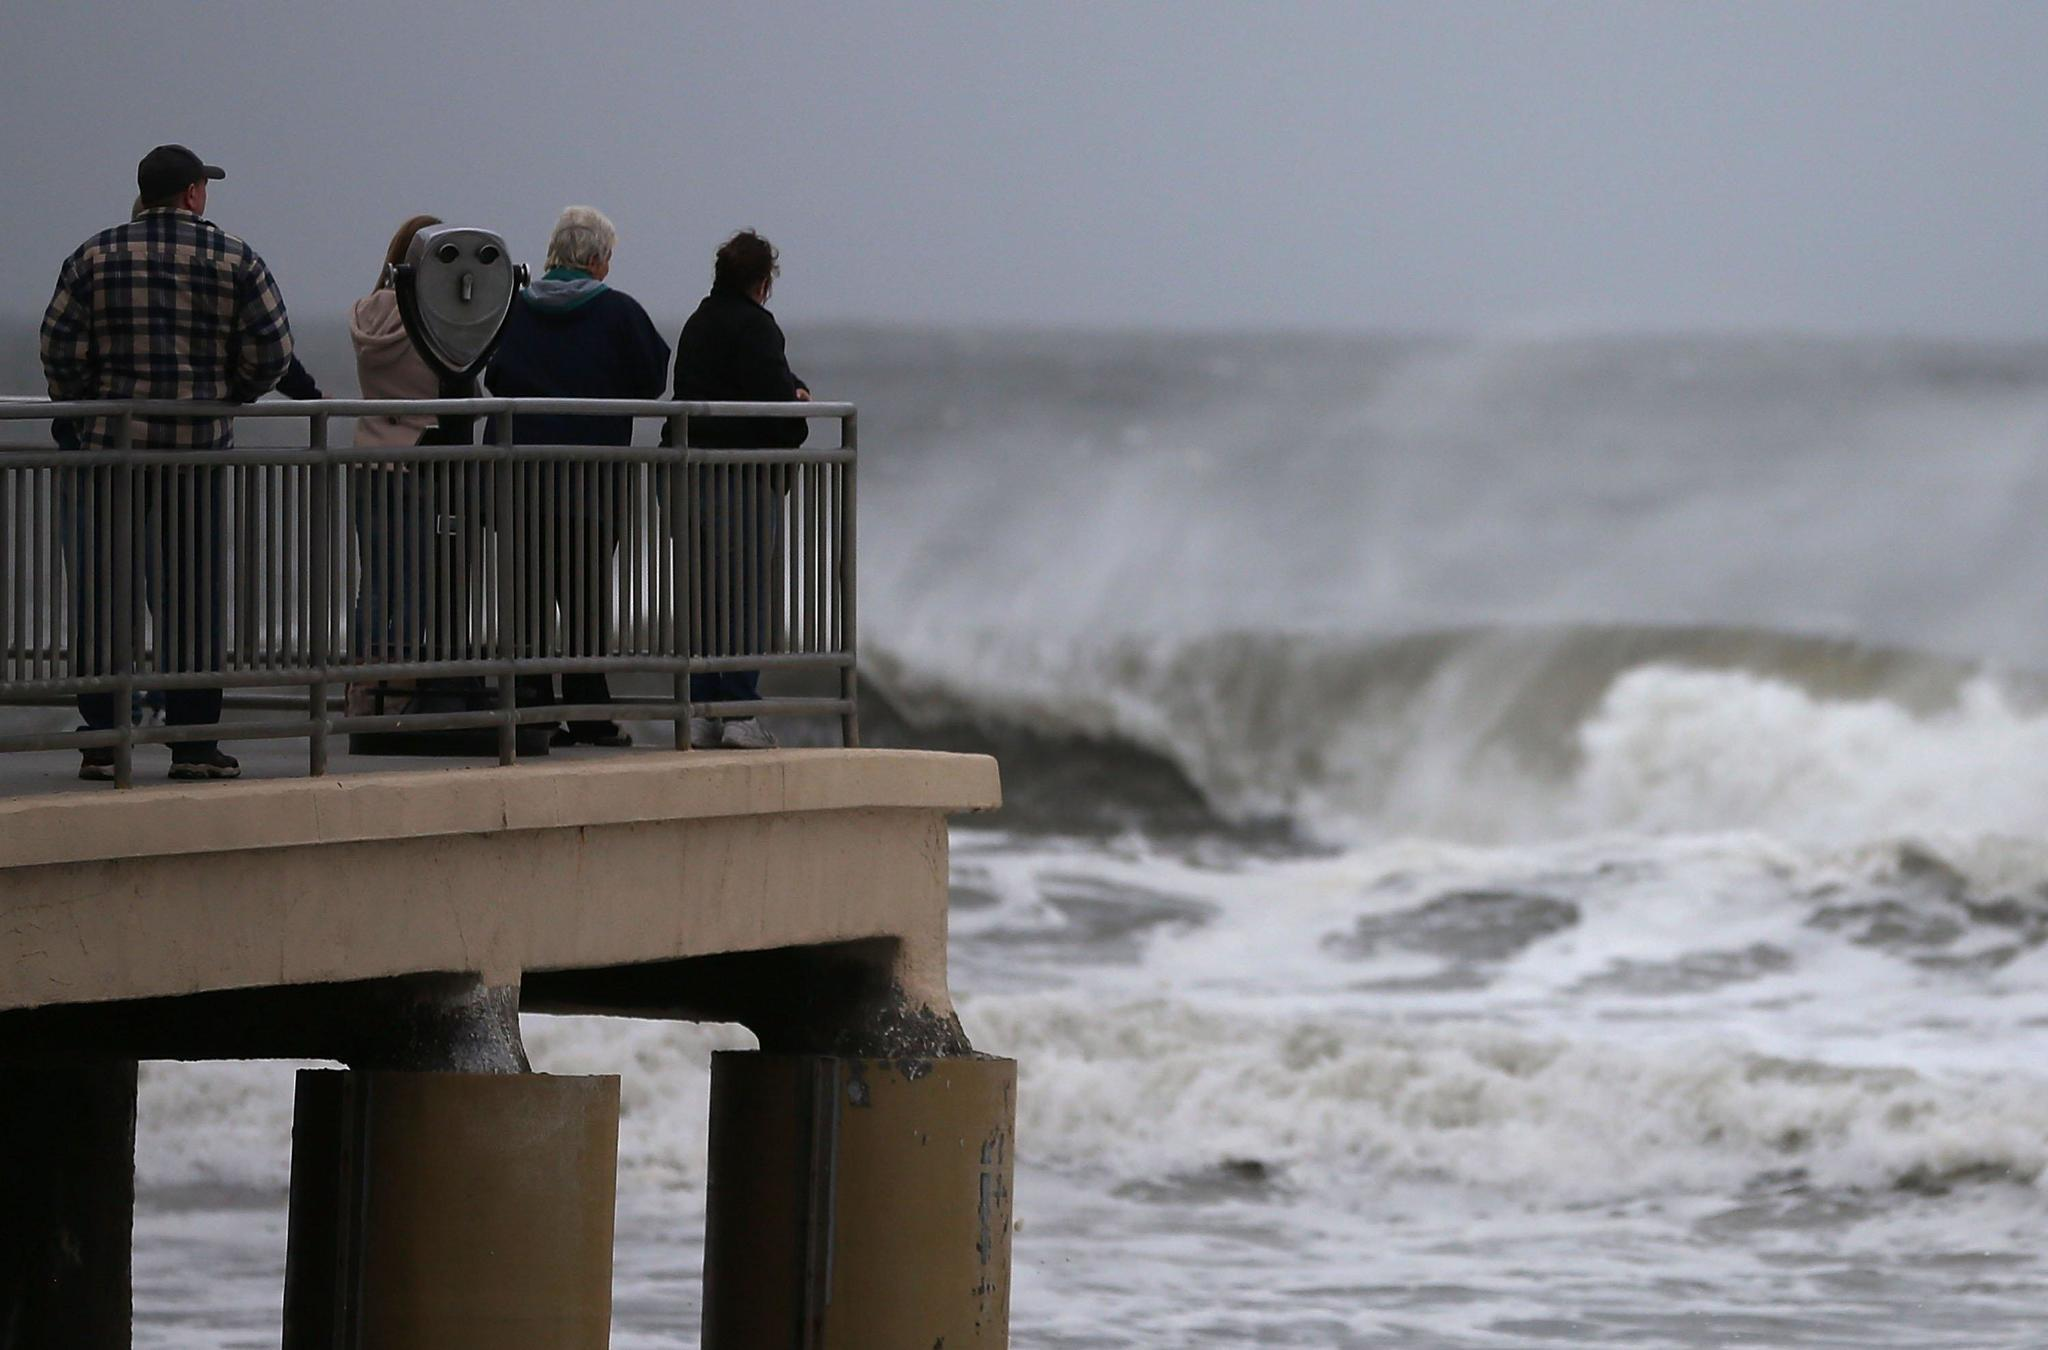 Jersey Shore cottages becoming thing of the past because of Sandy